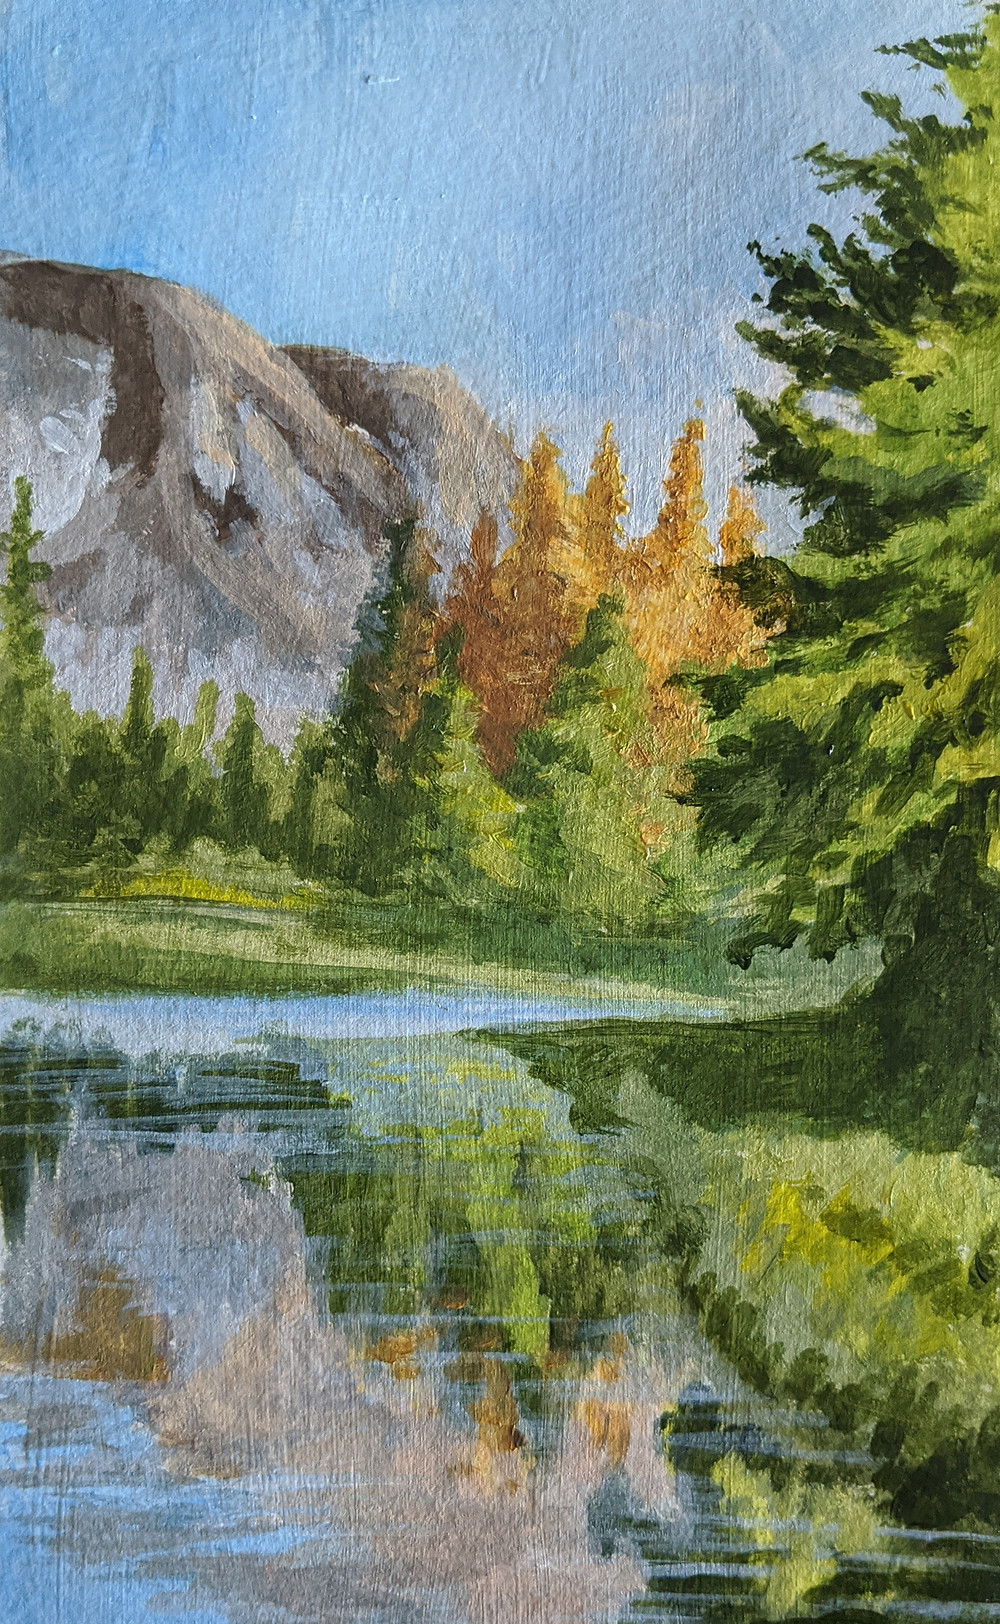 Landscape painting, Mountain, reflection, daily painting practice, improve your painting